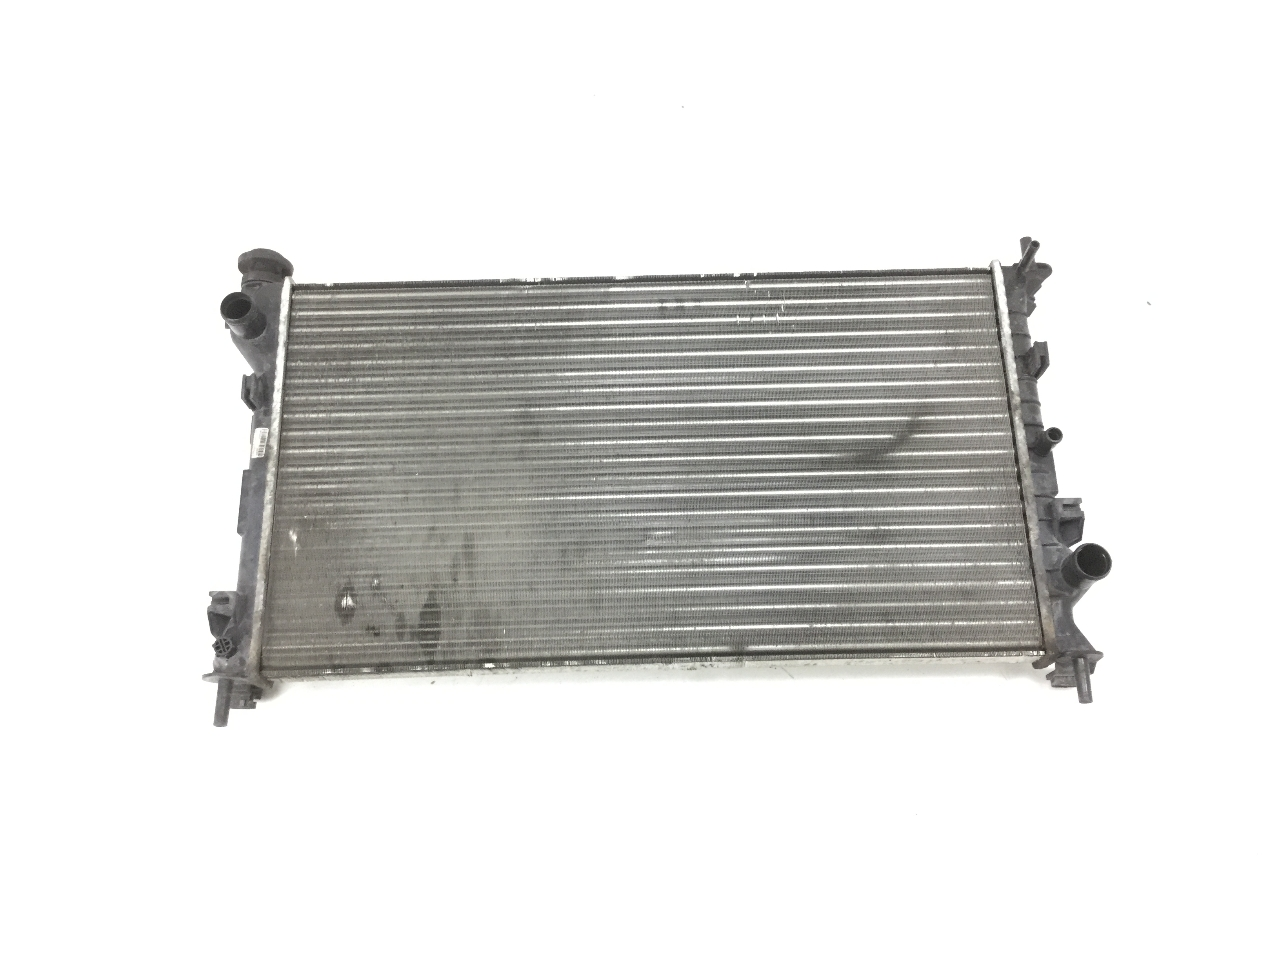 FORD TRANSIT CONNECT RADIATOR WITHOUT A//C 1.8 DIESEL 2003 ON 4367089